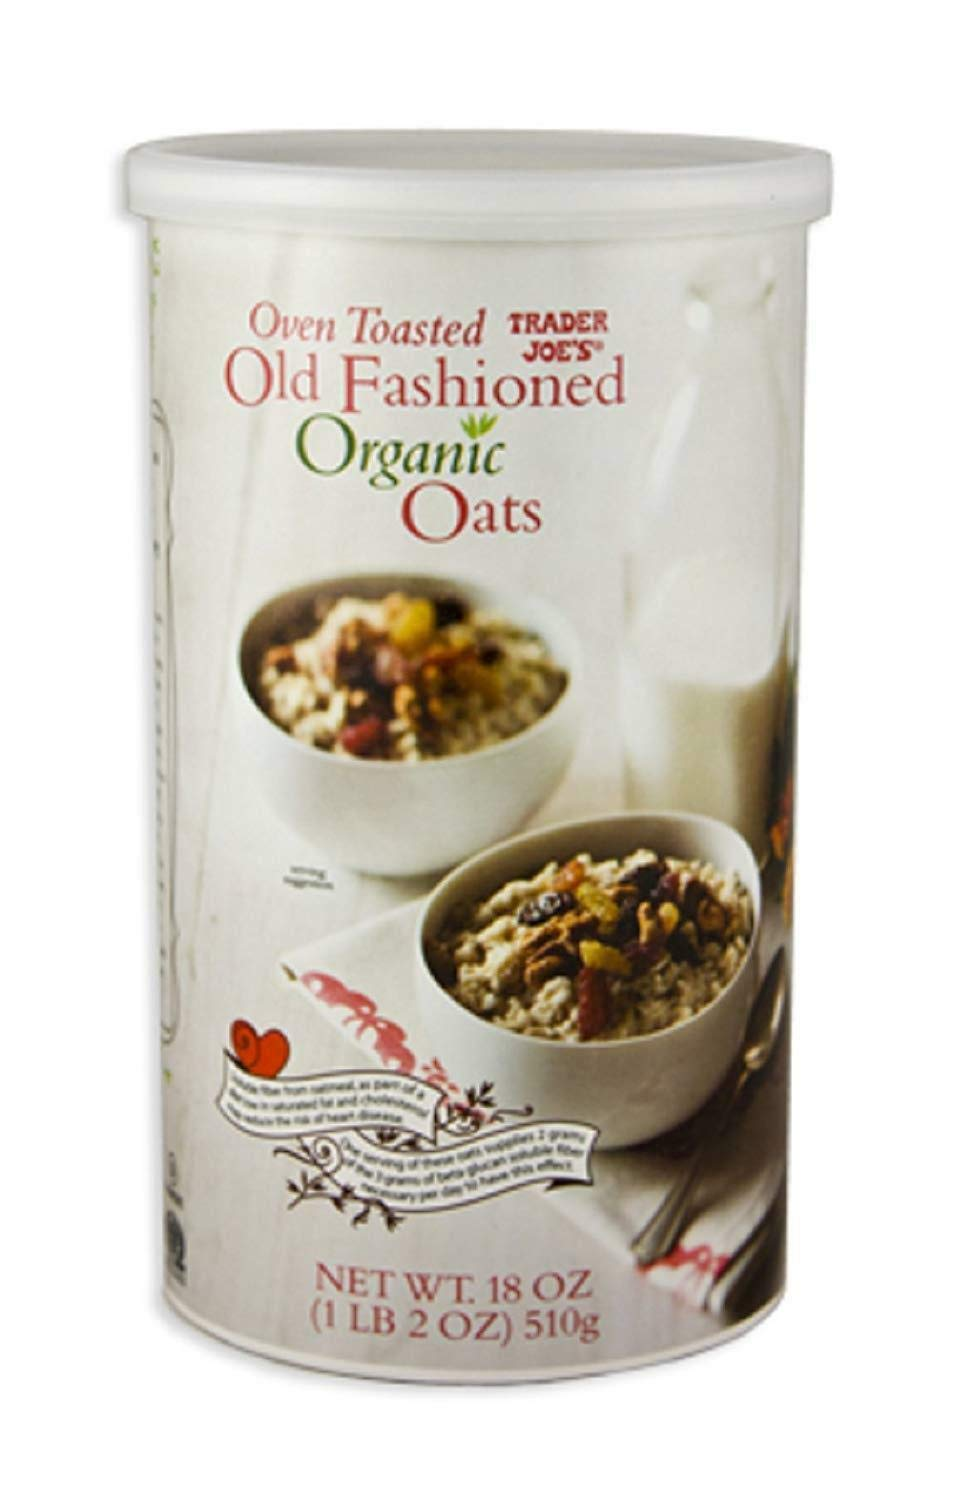 2 x Trader Joes Oven Toasted Old Fashioned Organic Oats 18-oz